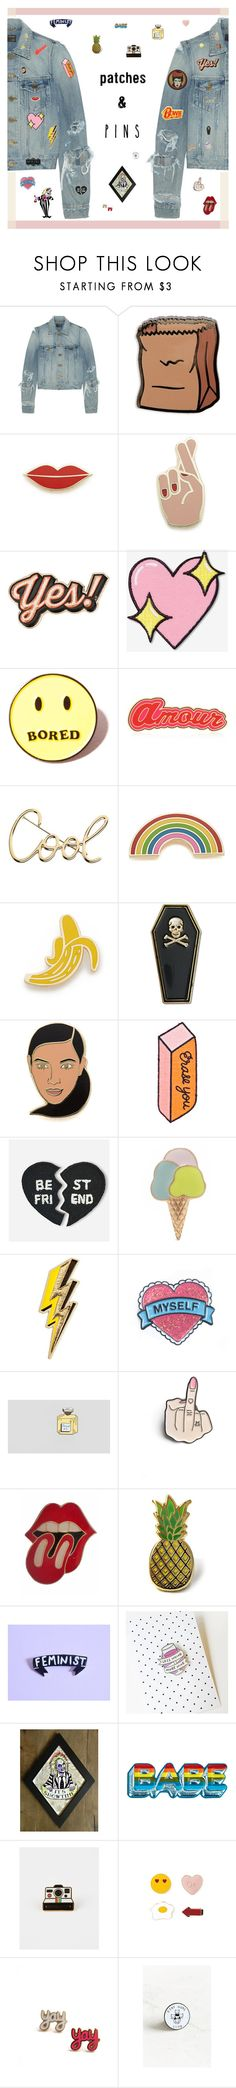 """Patch It, Pin It, Perfect! - Contest Entry"" by amberelb ❤ liked on Polyvore featuring Yves Saint Laurent, PINTRILL, Georgia Perry, Anya Hindmarch, Big Bud Press, Local Heroes, Maria Francesca Pepe, Lanvin, Tuesday Bassen and Hipstapatch"